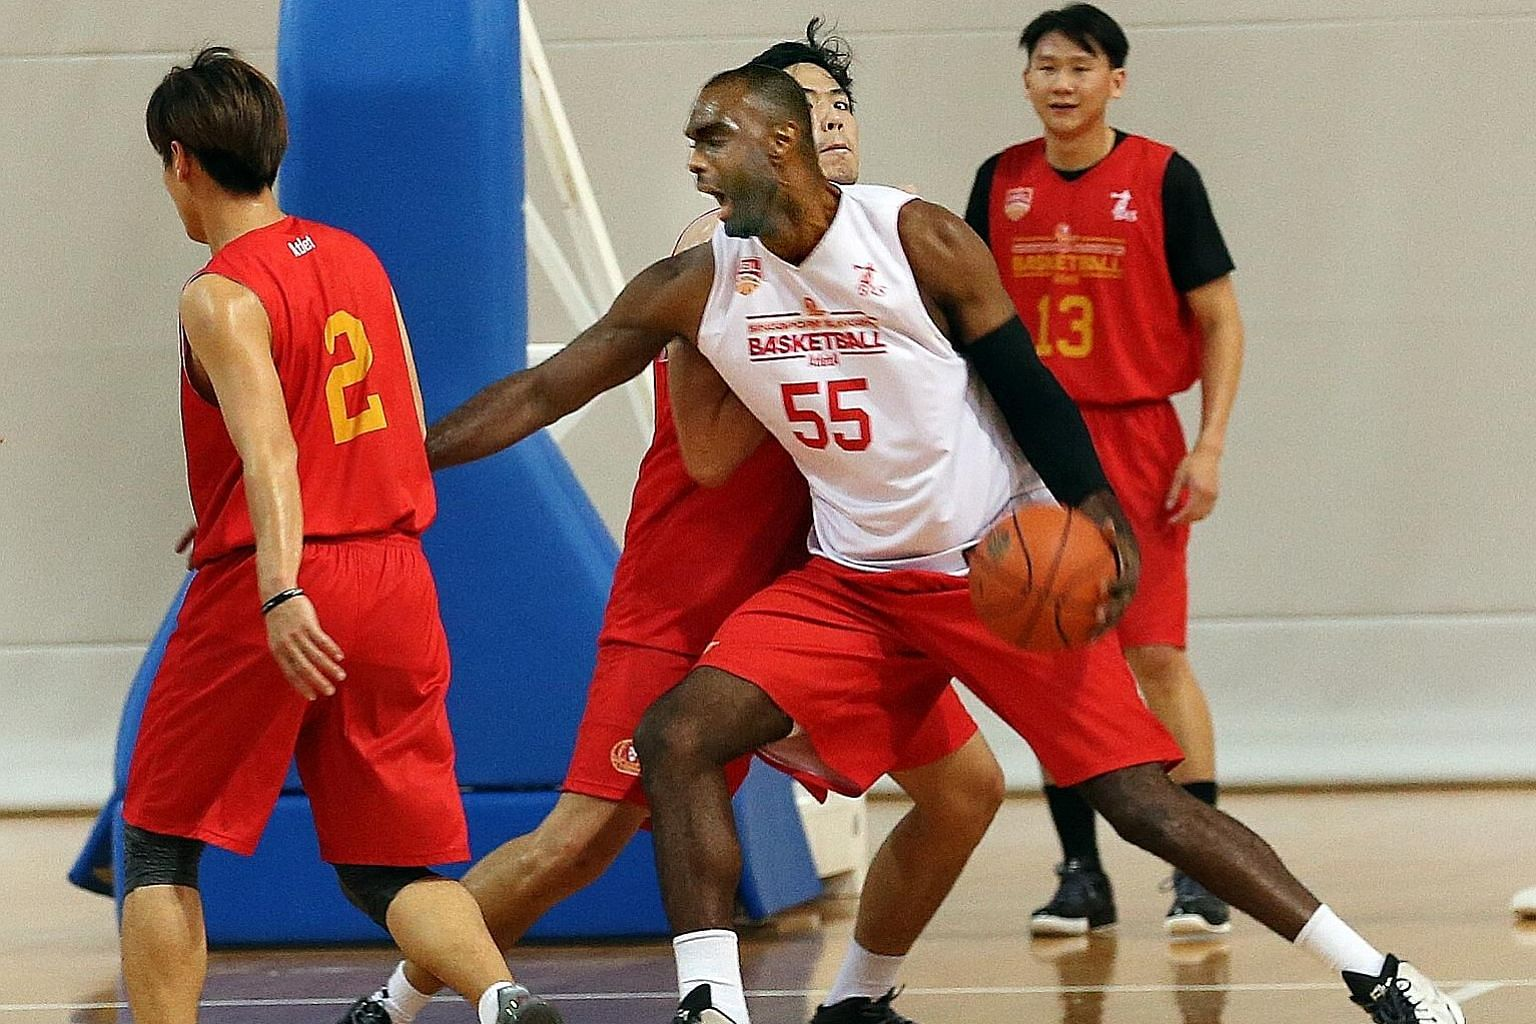 The Singapore Slingers training ahead of their best-of-three ABL semi-finals play-offs against Alab Pilipinas. They are aiming to make a second straight Finals appearance in the hope of winning their first ABL title.